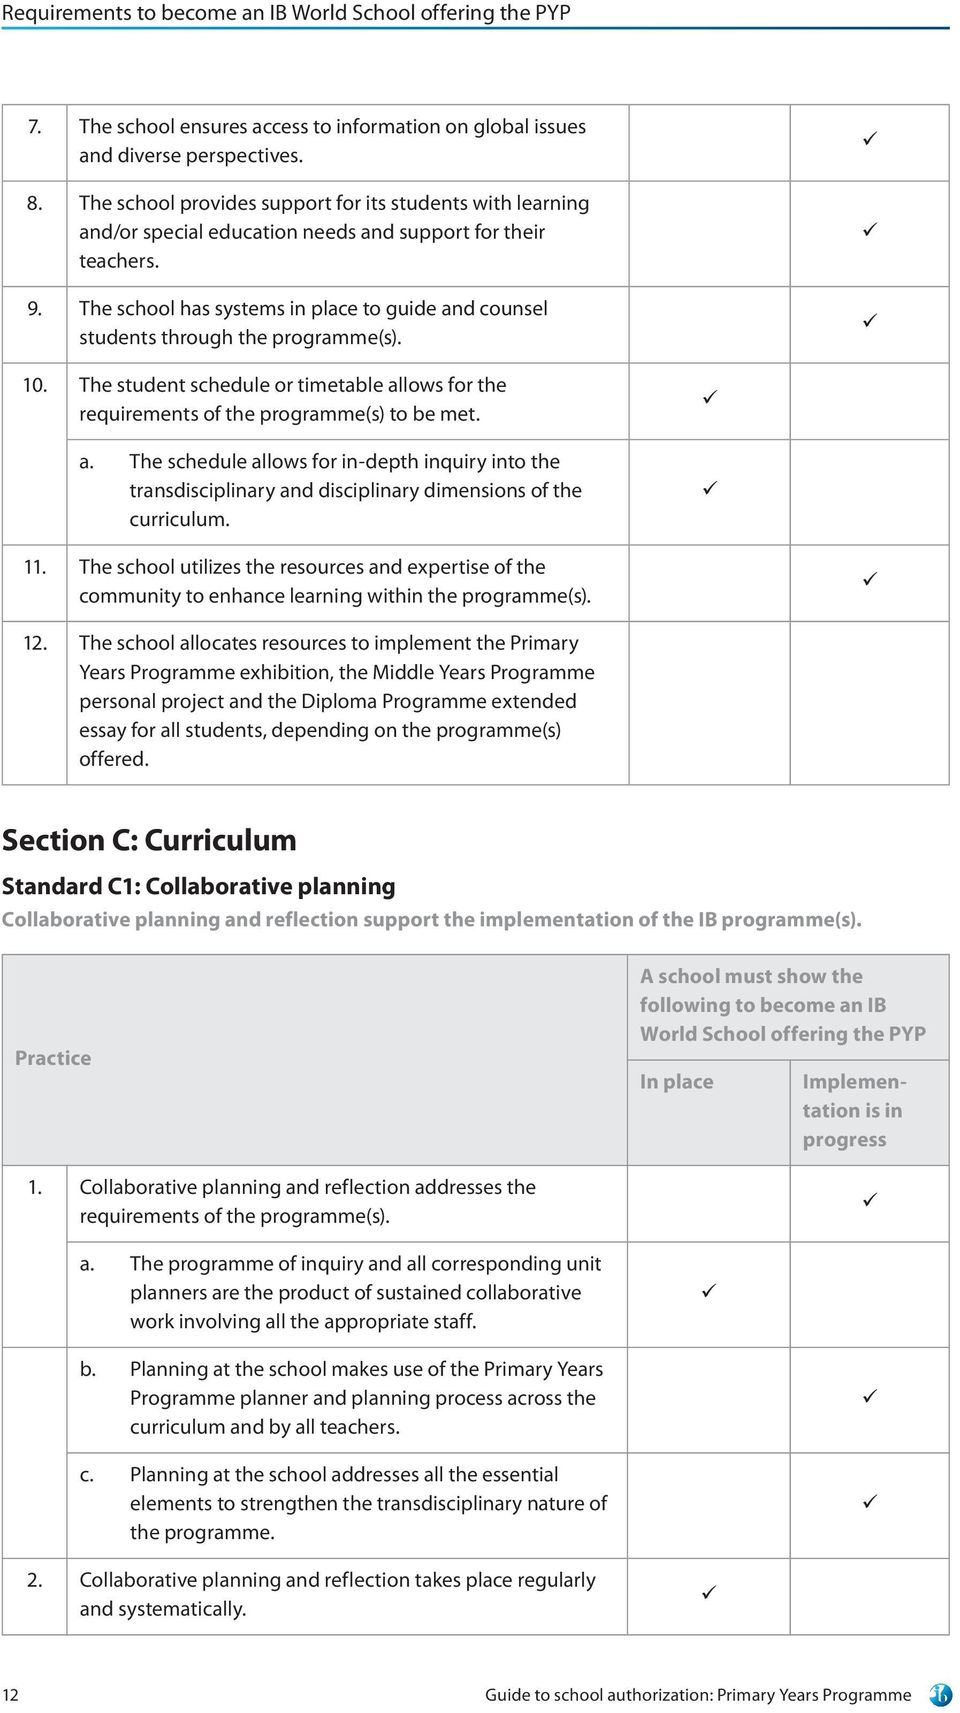 The school has systems in place to guide and counsel students through the programme(s). 10. The student schedule or timetable allows for the requirements of the programme(s) to be met. a. The schedule allows for in-depth inquiry into the transdisciplinary and disciplinary dimensions of the curriculum.